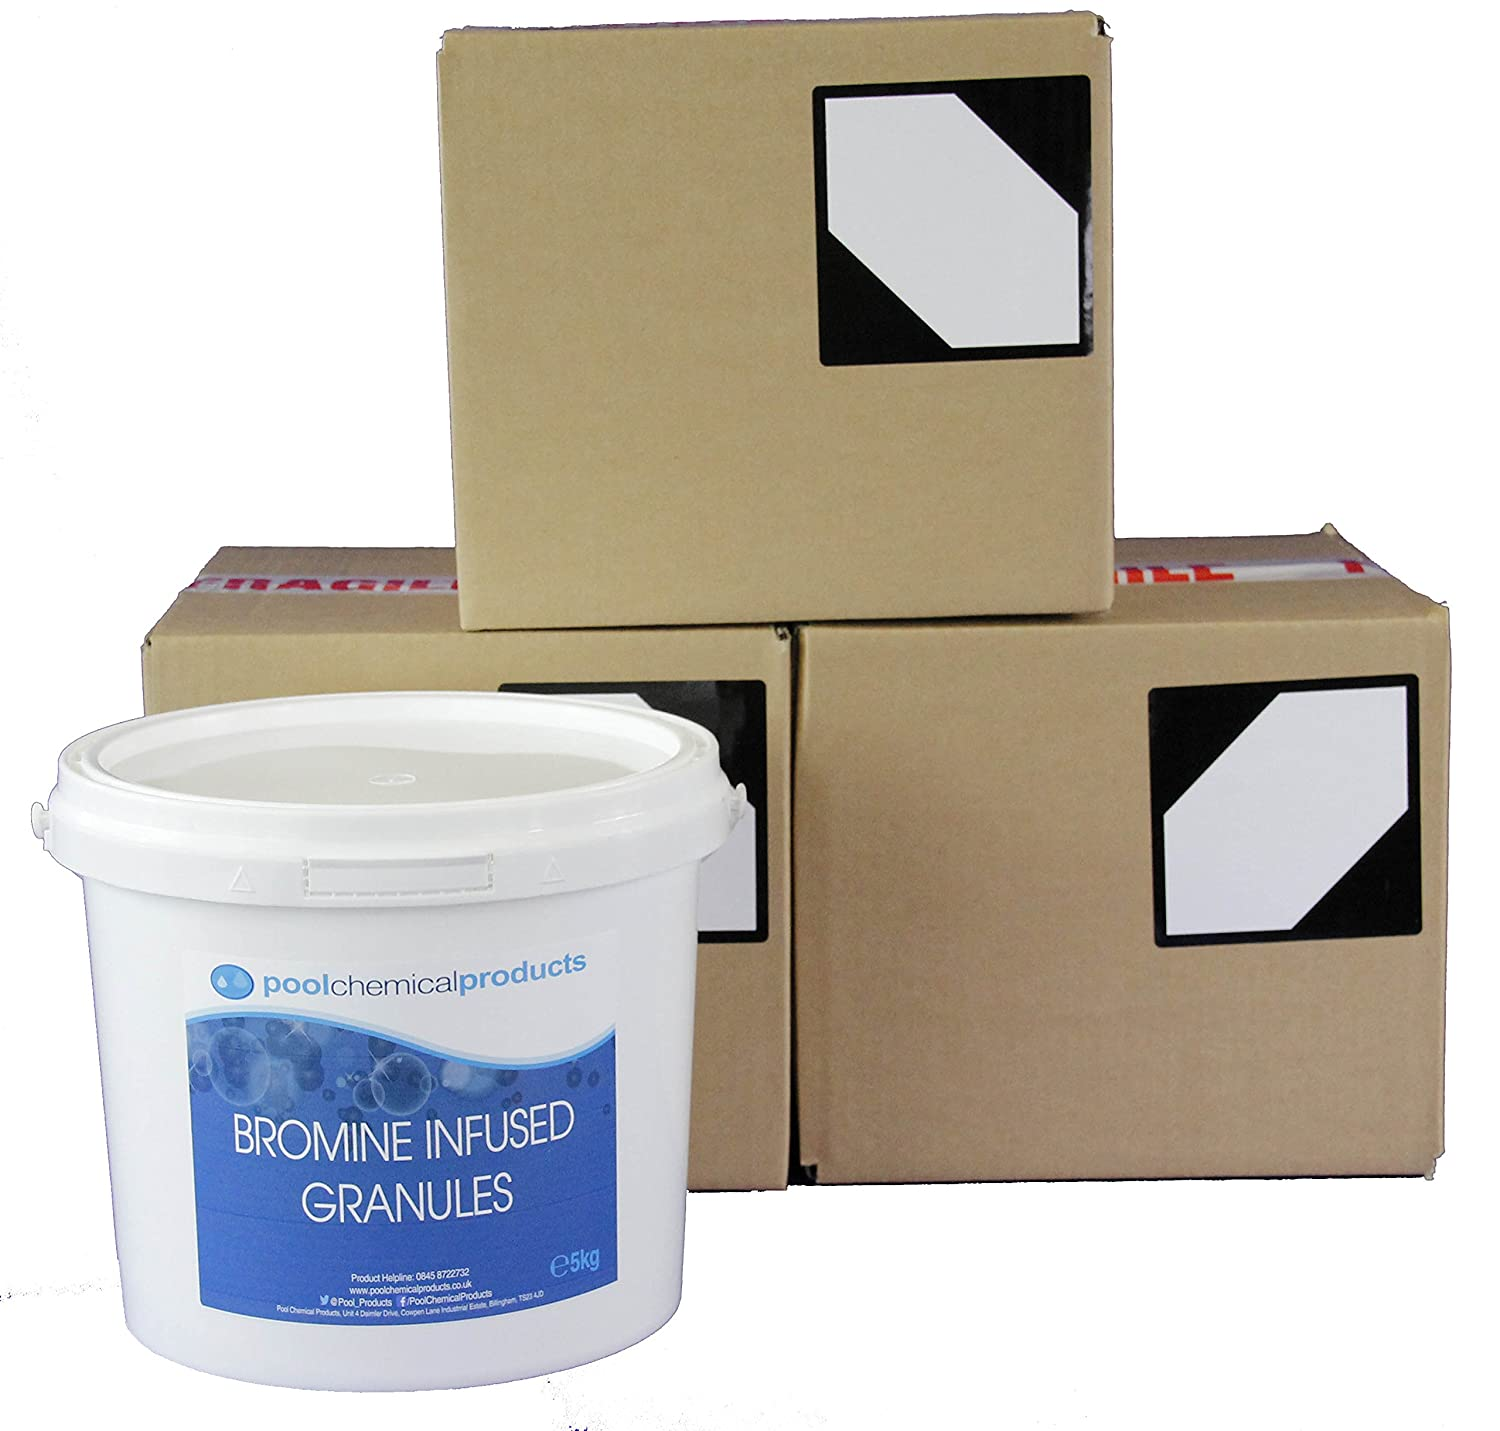 Bromine Infused Granules 20kg Swimming Pool Spa Hot Tub Pool Chemical Products